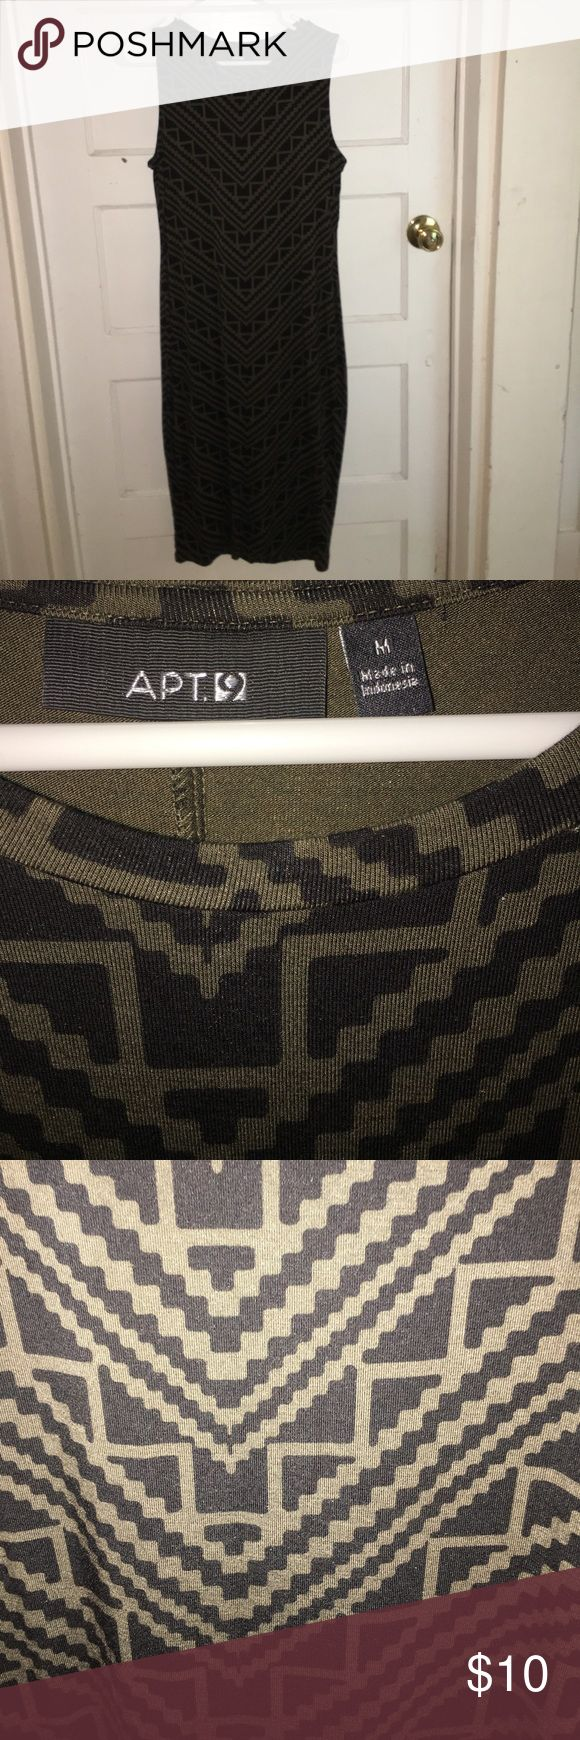 Apt 9 Aztec Body Con Dress M Army green and black Apt 9 Body Con Dress size Medium. Like new, so cute!  Dress it up or down. Apt.9 Dresses